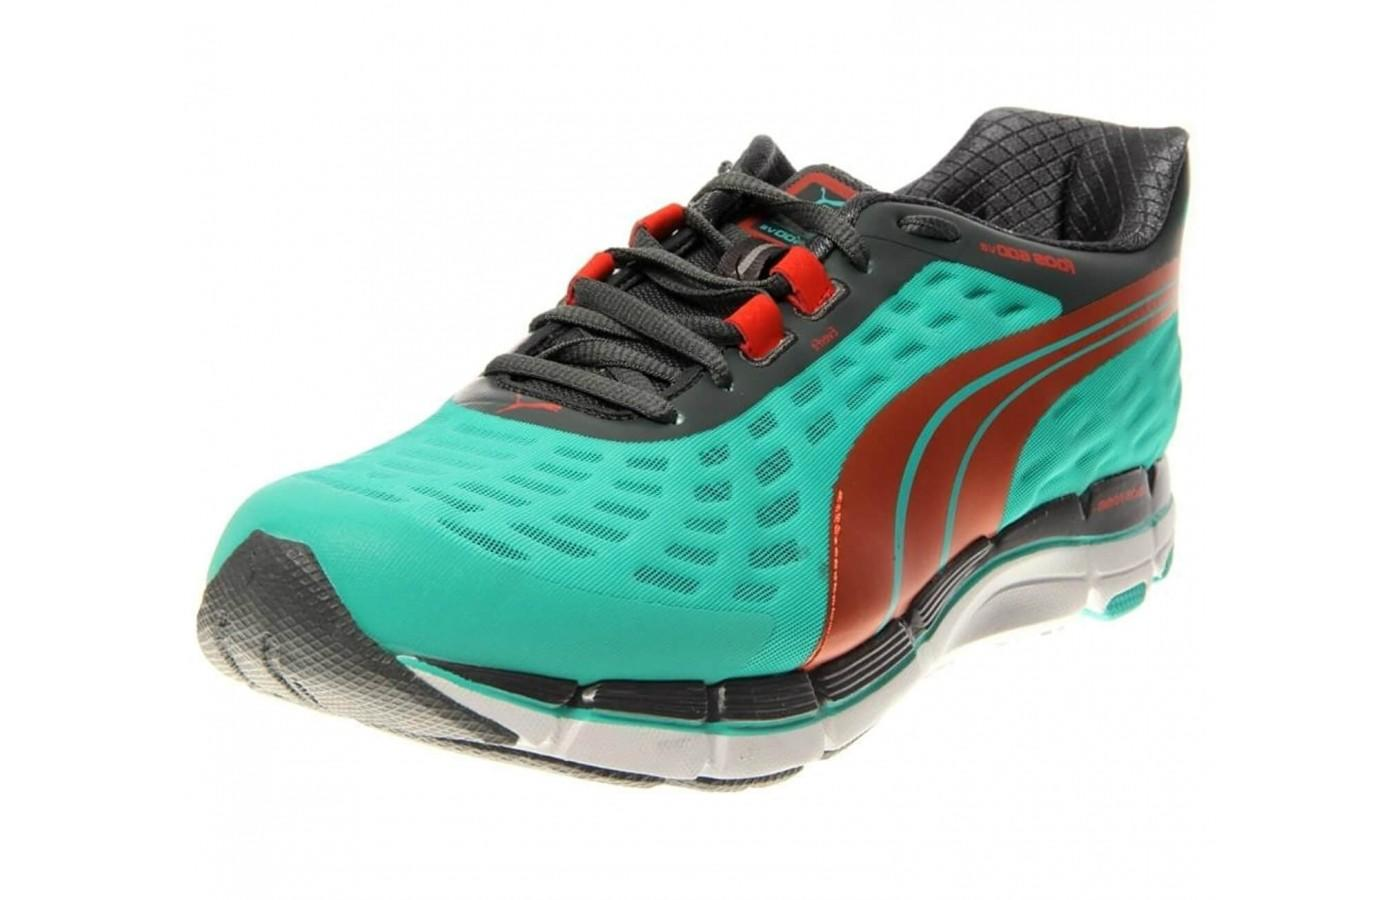 e7c78c7bf49 the Puma Faas 600 v2 is a stylish and breathable trainer ...